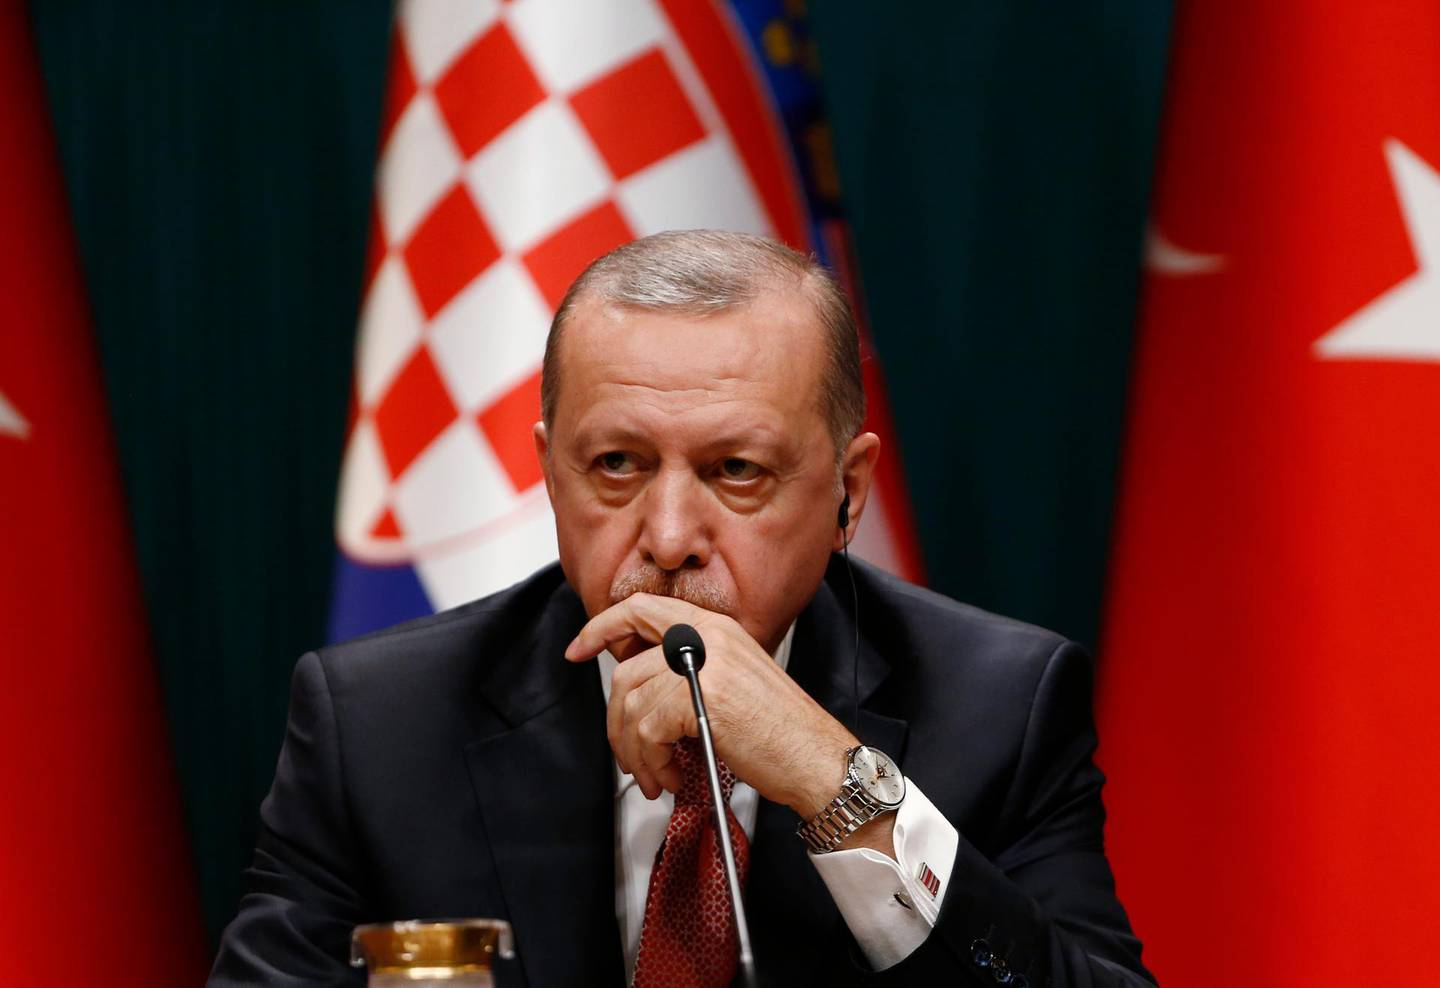 Turkey's President Recep Tayyip Erdogan talks during a joint news conference with Croatia's President Kolinda Grabar-Kitarovic, following their meeting at the Presidential Palace in Ankara, Turkey, Wednesday, Jan. 16, 2019. Erdogan said that an explosion that killed U.S. service members, during a routine patrol in the northern Syrian town of Manbij, may have been an act aimed to deter the United States from withdrawing troops. (AP Photo/Burhan Ozbilici)